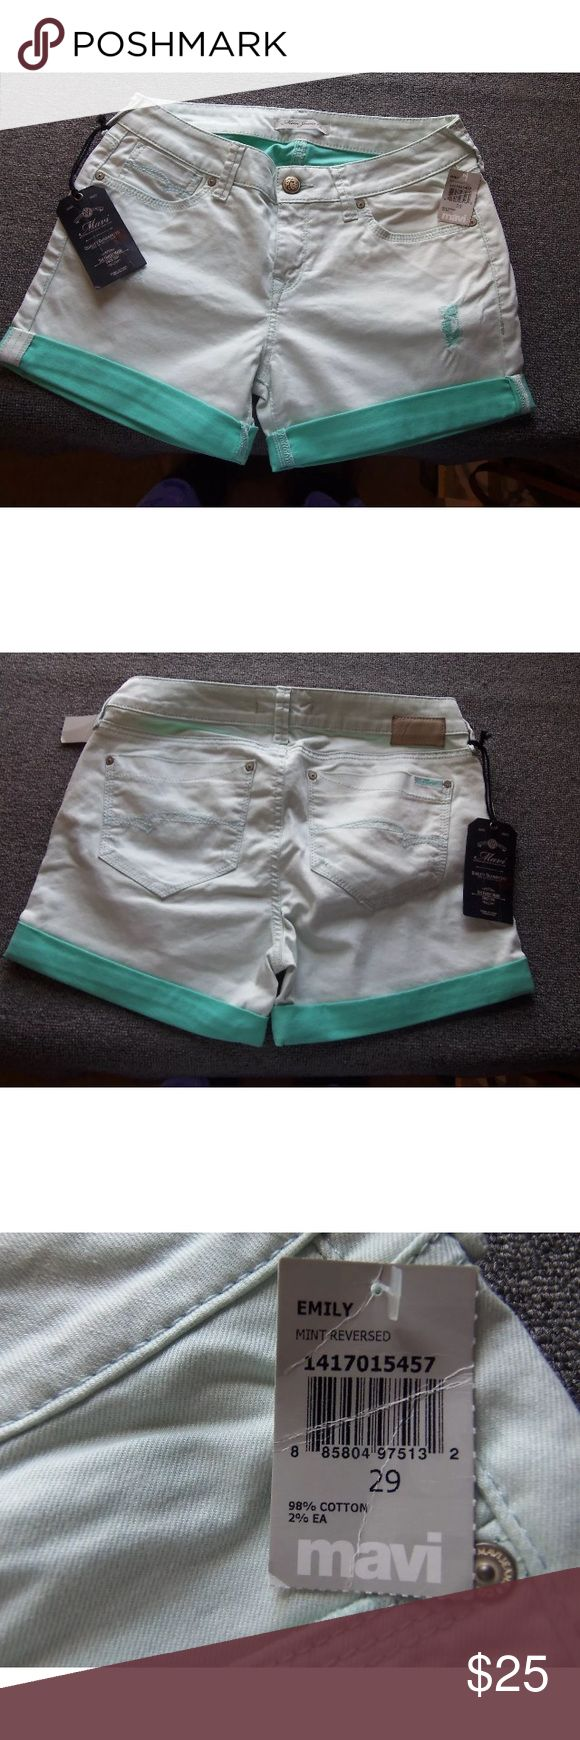 "NEW MAVI EMILY Mint Green Denim Jean Shorts Sz 29 NEW MAVI SHORTS   STYLE: ""EMILY"" STRETCH DENIM/JEAN SHORTS  98% COTTON 2% ELASTANE  COLOR and / or WASH:  MINT GREEN  TAG SIZE: 29  Apx. Hand Measurements:  WAIST: 32  ( waist-side to side at waist x 2 )  INSEAM: 3.5  ( inseam-leg straight out measuring from crotch to hem )  RISE: 9  ( front rise-top of waist to mid crotch seam )  HIPS: 38  ( largest part of hip-side to side x 2 )  CONDITION : NEW WITH TAG. As pictured. Color may vary from…"